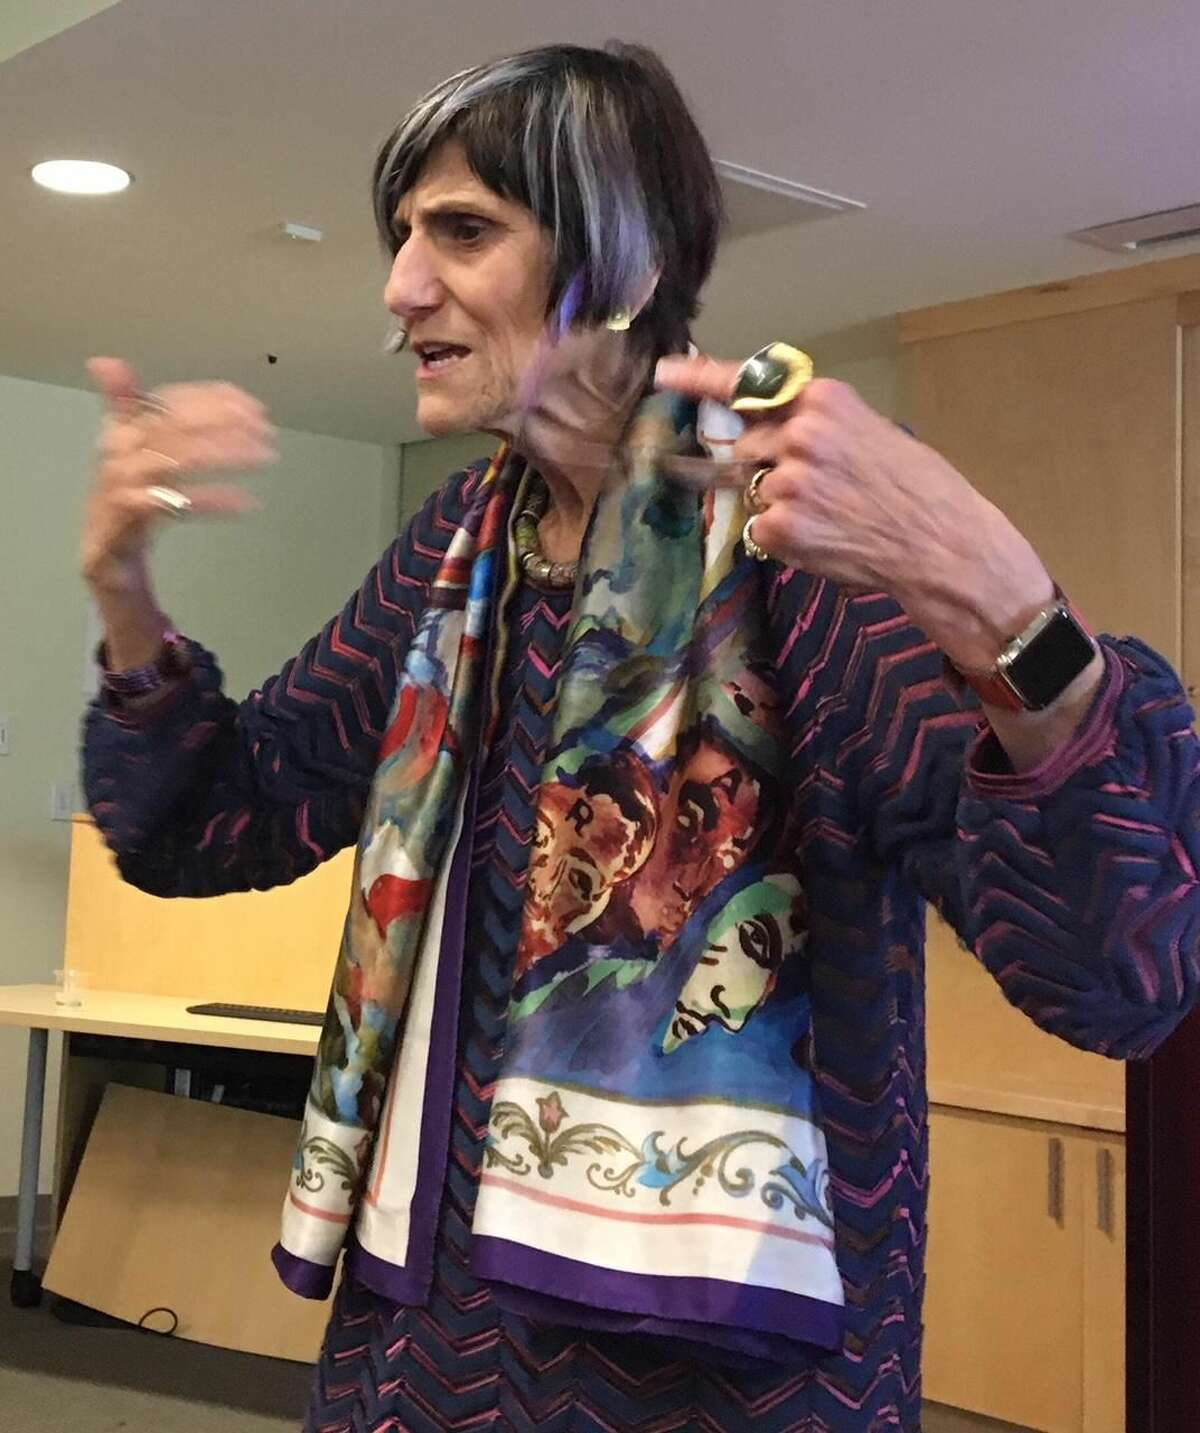 U.S. Rep. Rosa DeLauro said she will fight for women's health issues on all fronts. She said the public has to speak up, particularly on next Supreme Court justice..